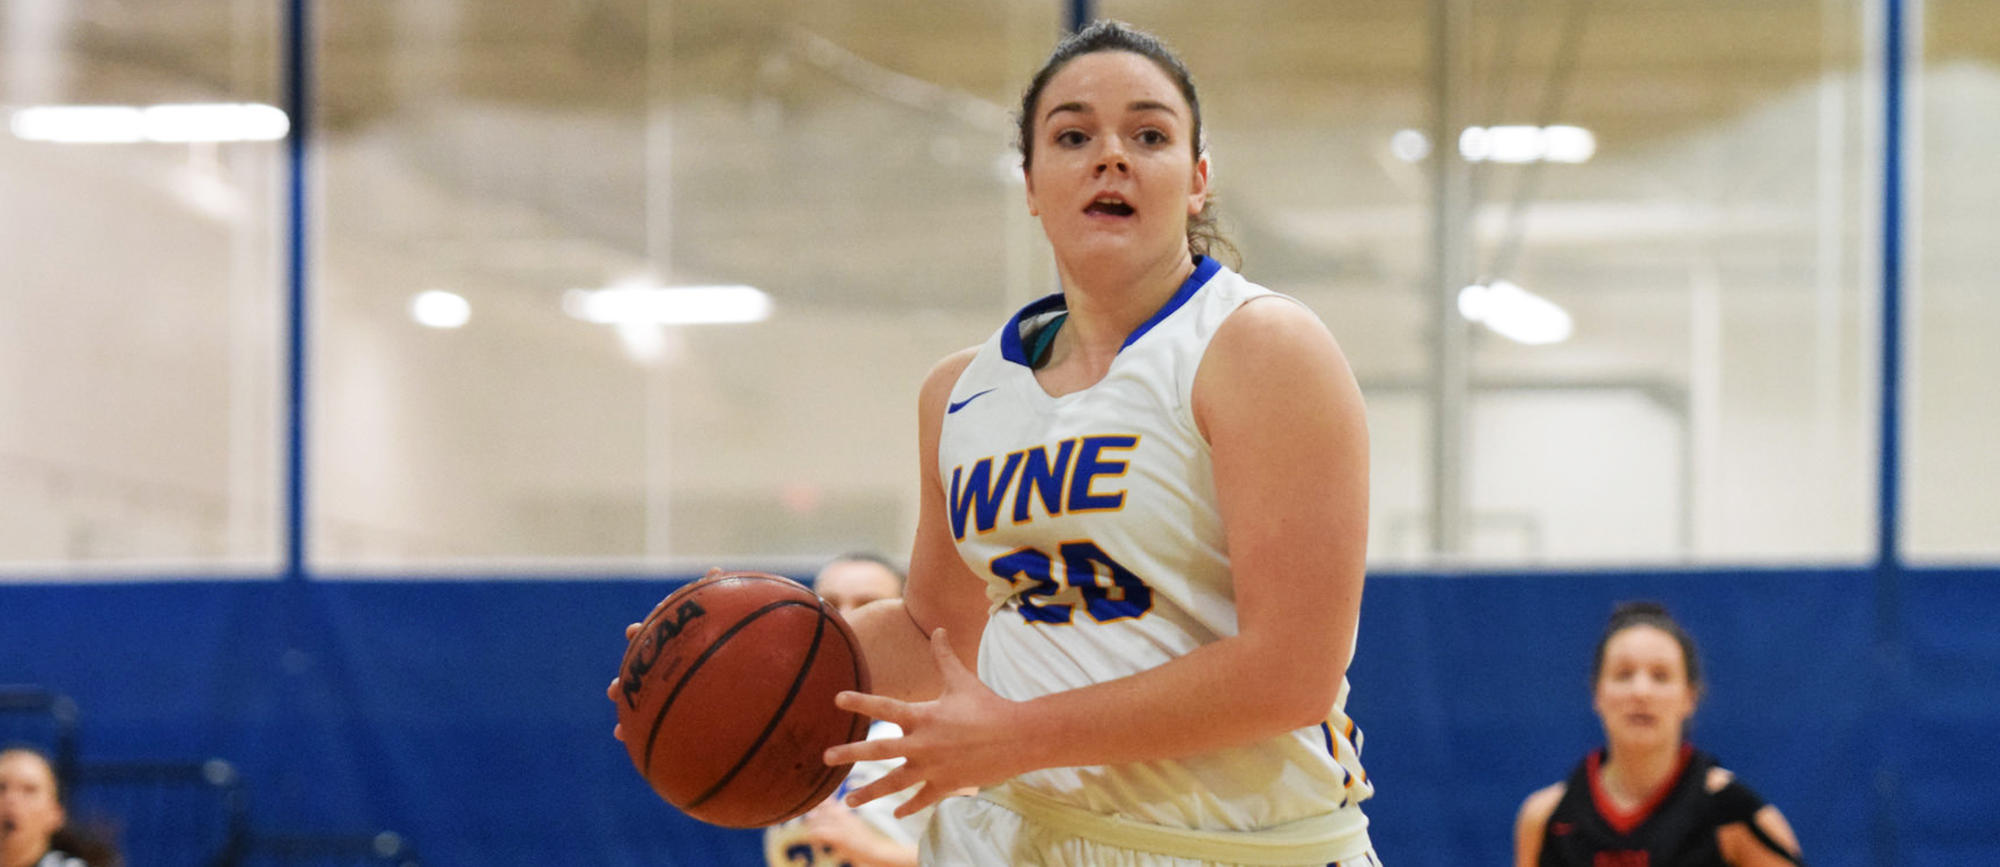 Sophomore Emily Scurka scored 11 points and grabbed five rebounds in just 10 minutes off the bench in Western New England's 79-61 victory over MCLA on Saturday. (Photo by Rachael Margossian)